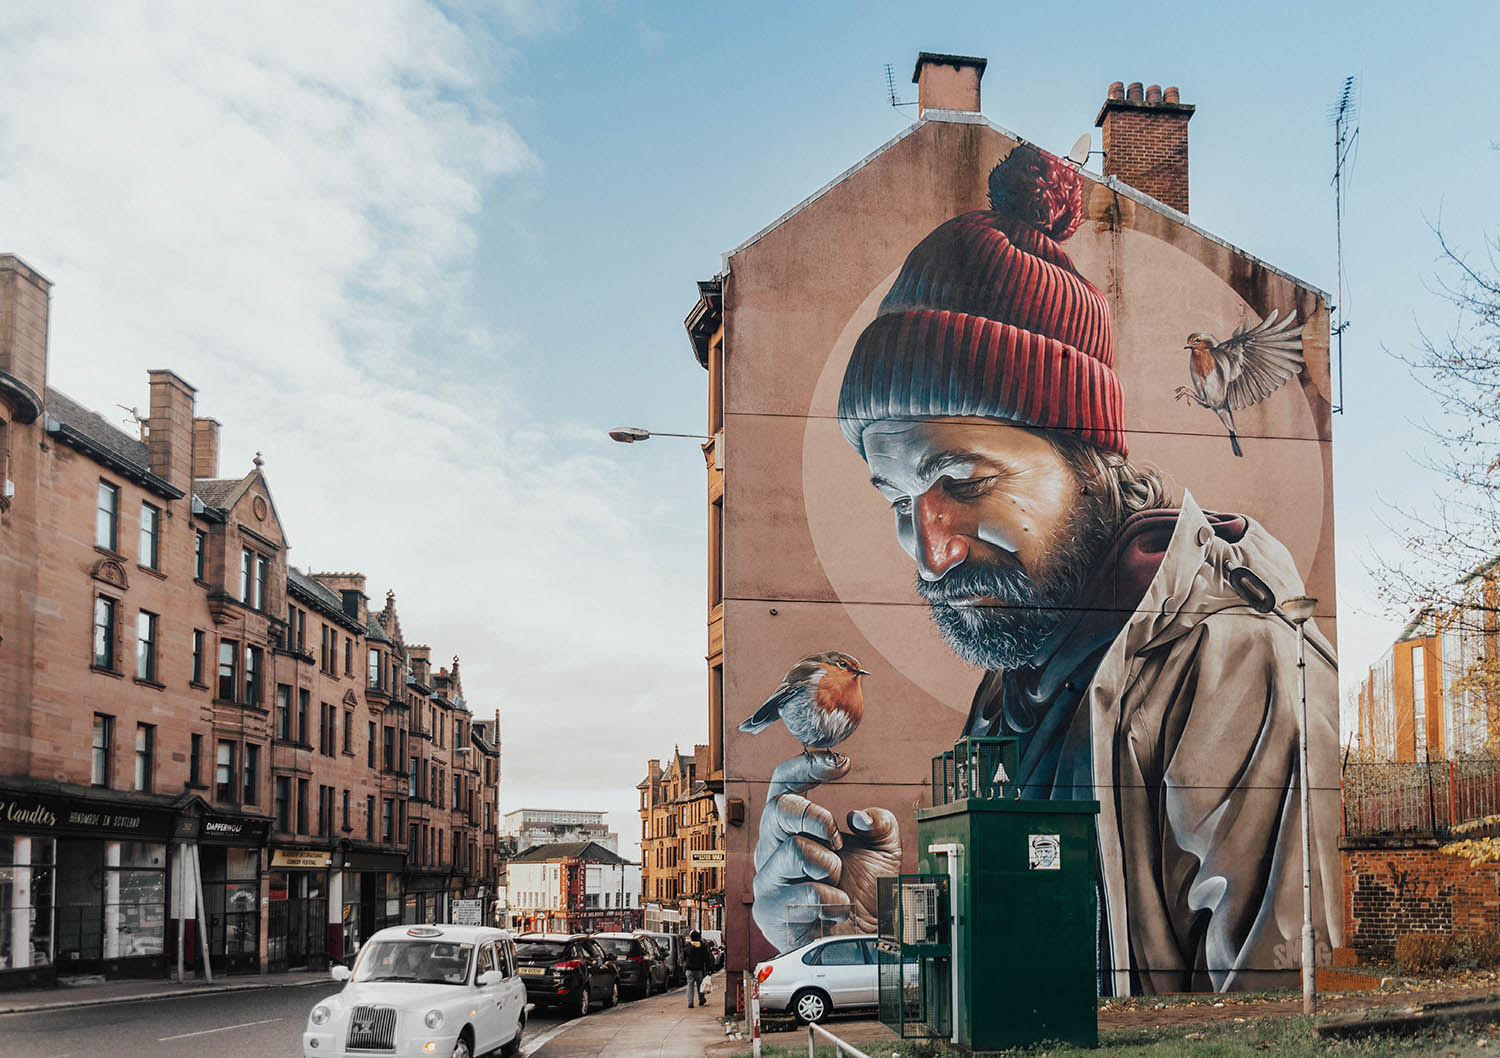 Beautiful Street Art by Sam Bates in Glasgow, Scotland